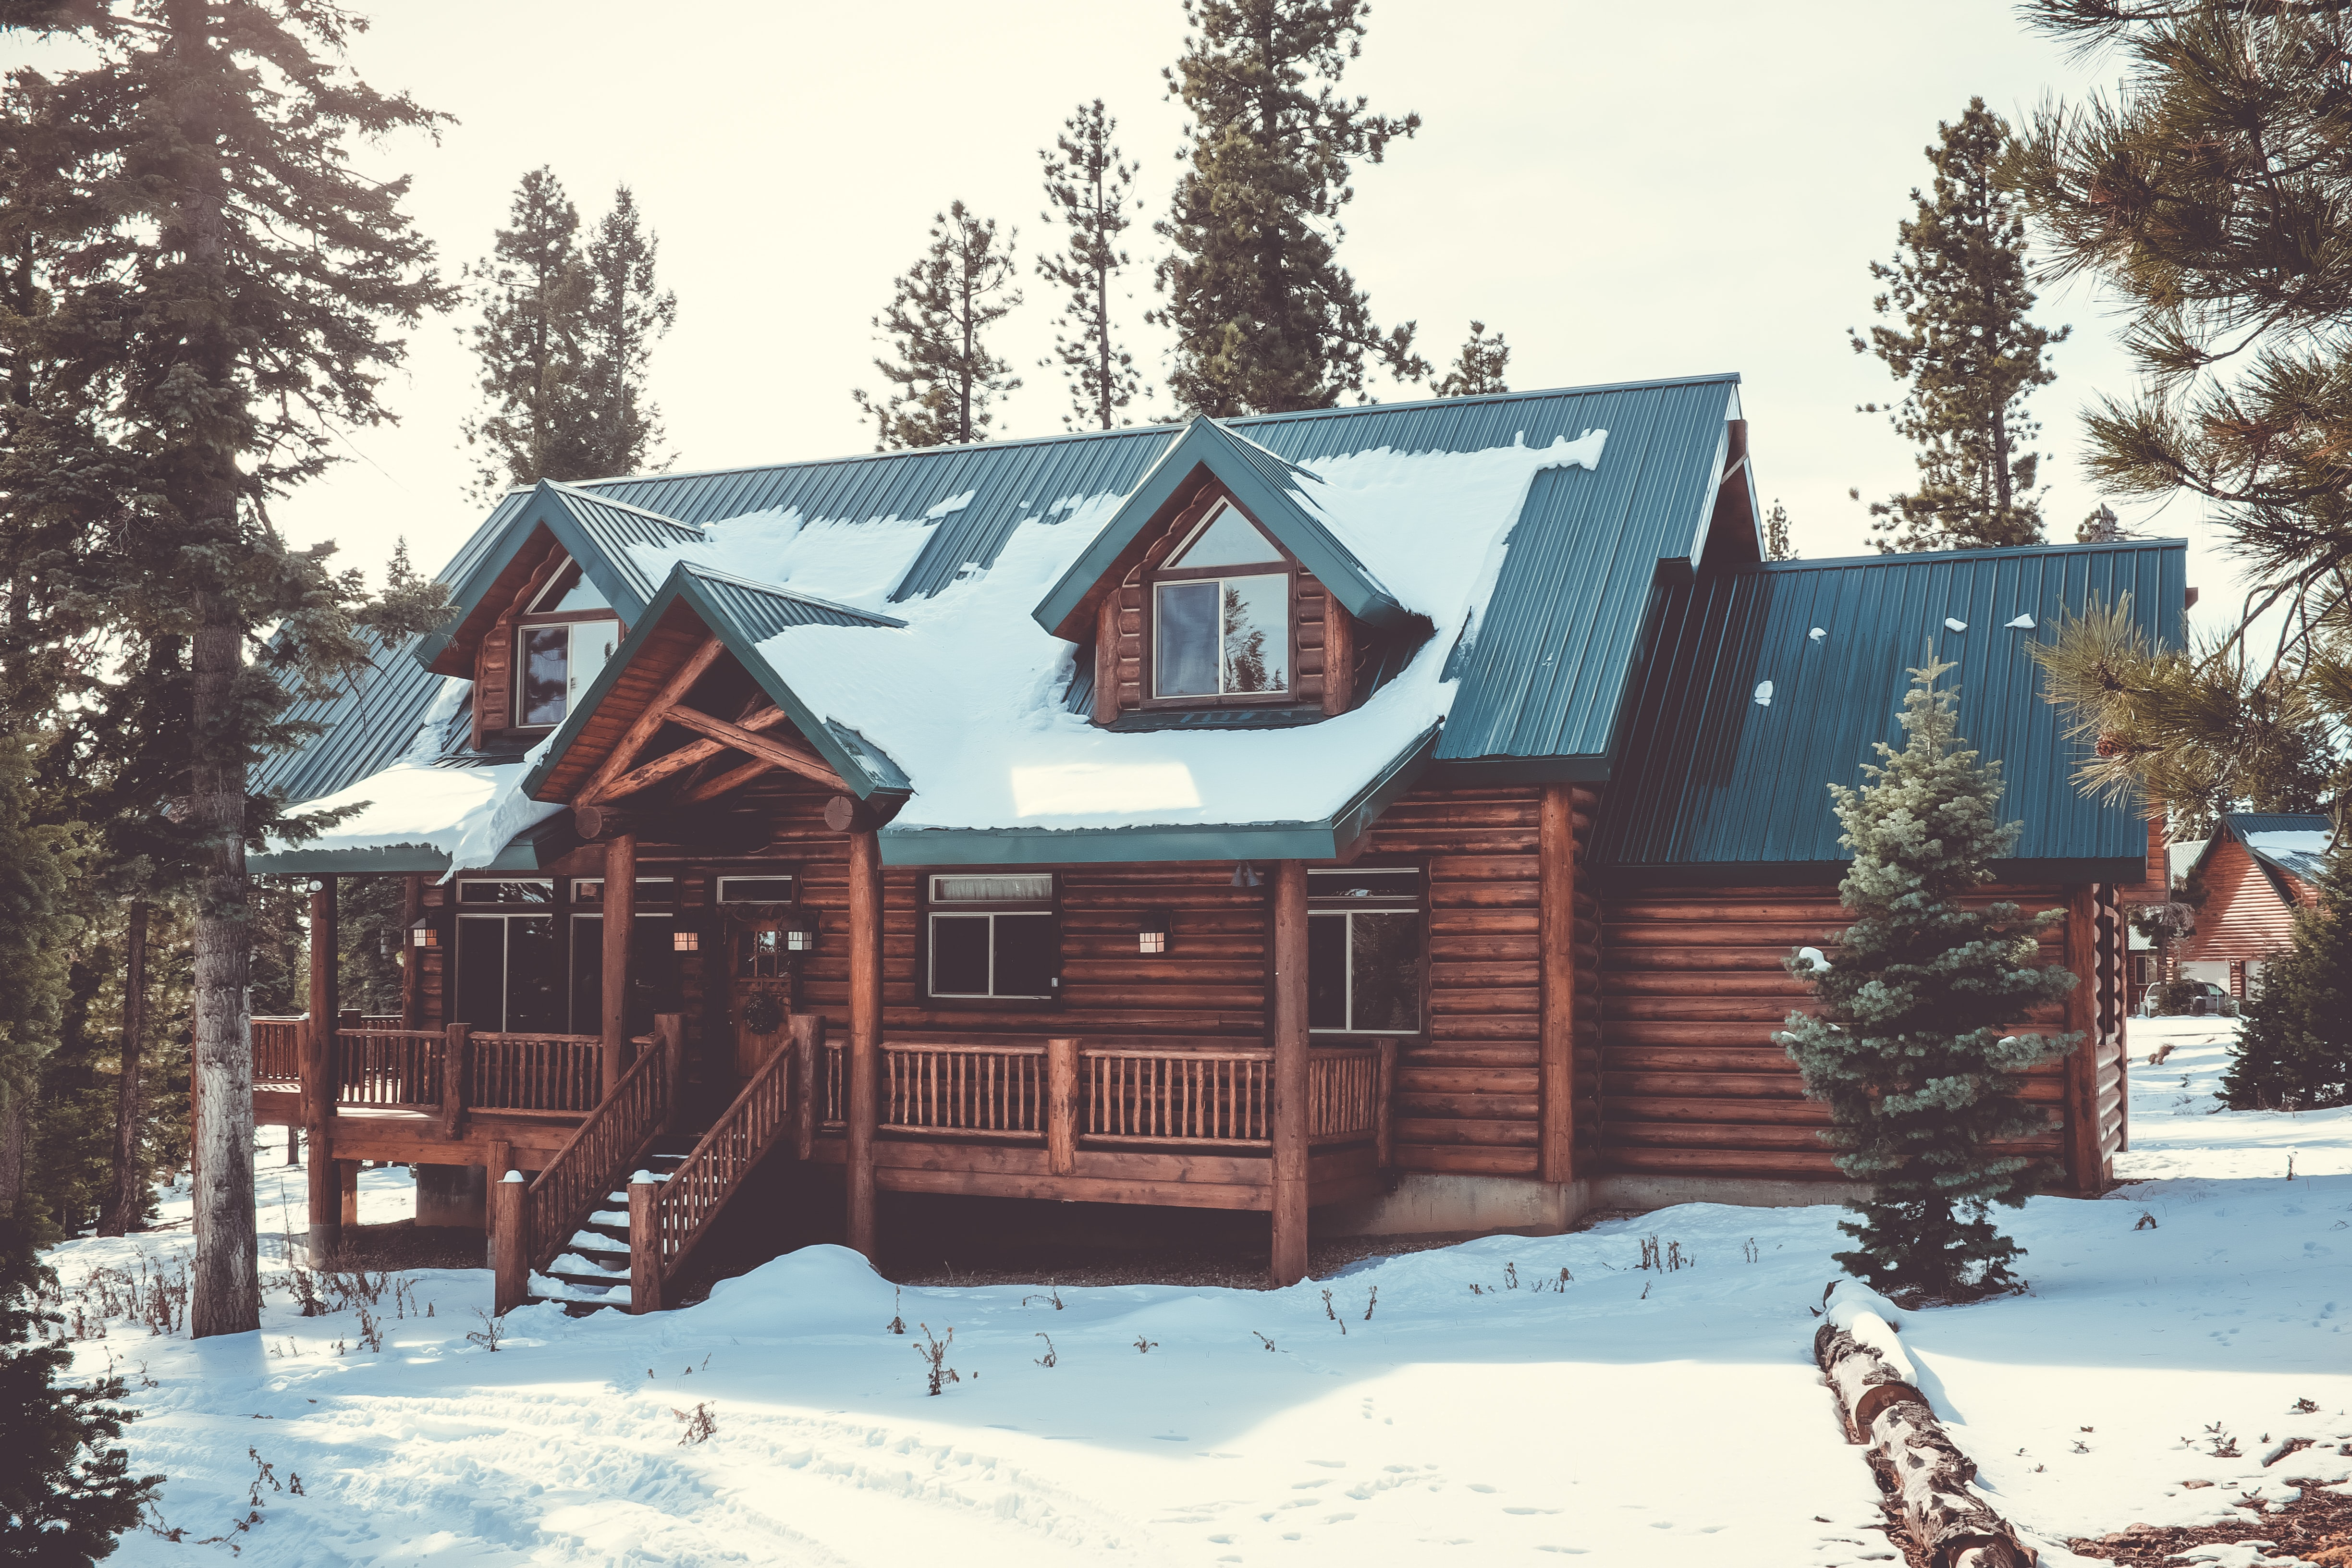 A snow covered log cabin in the forest surrounded by pine trees